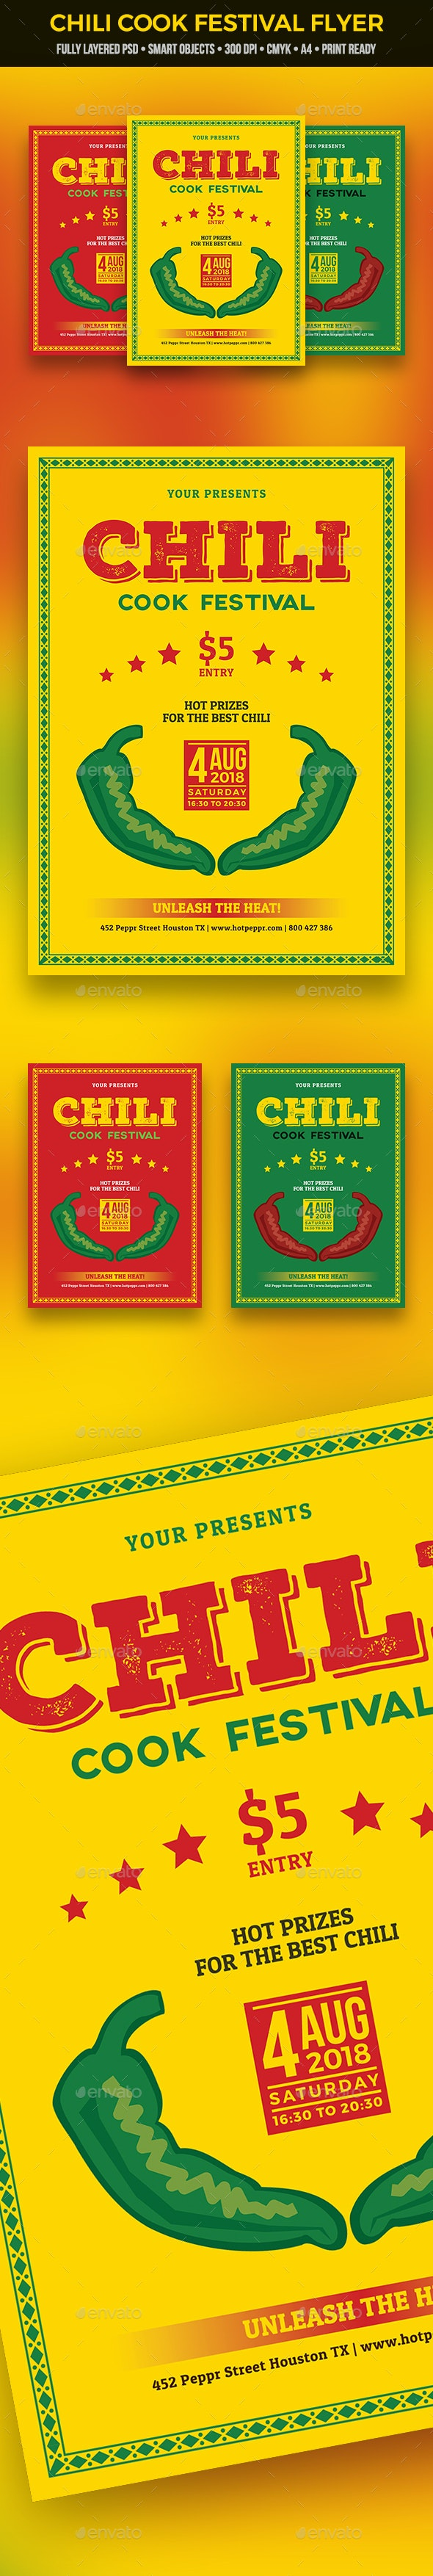 Chili Cook Festival Flyer - Miscellaneous Events